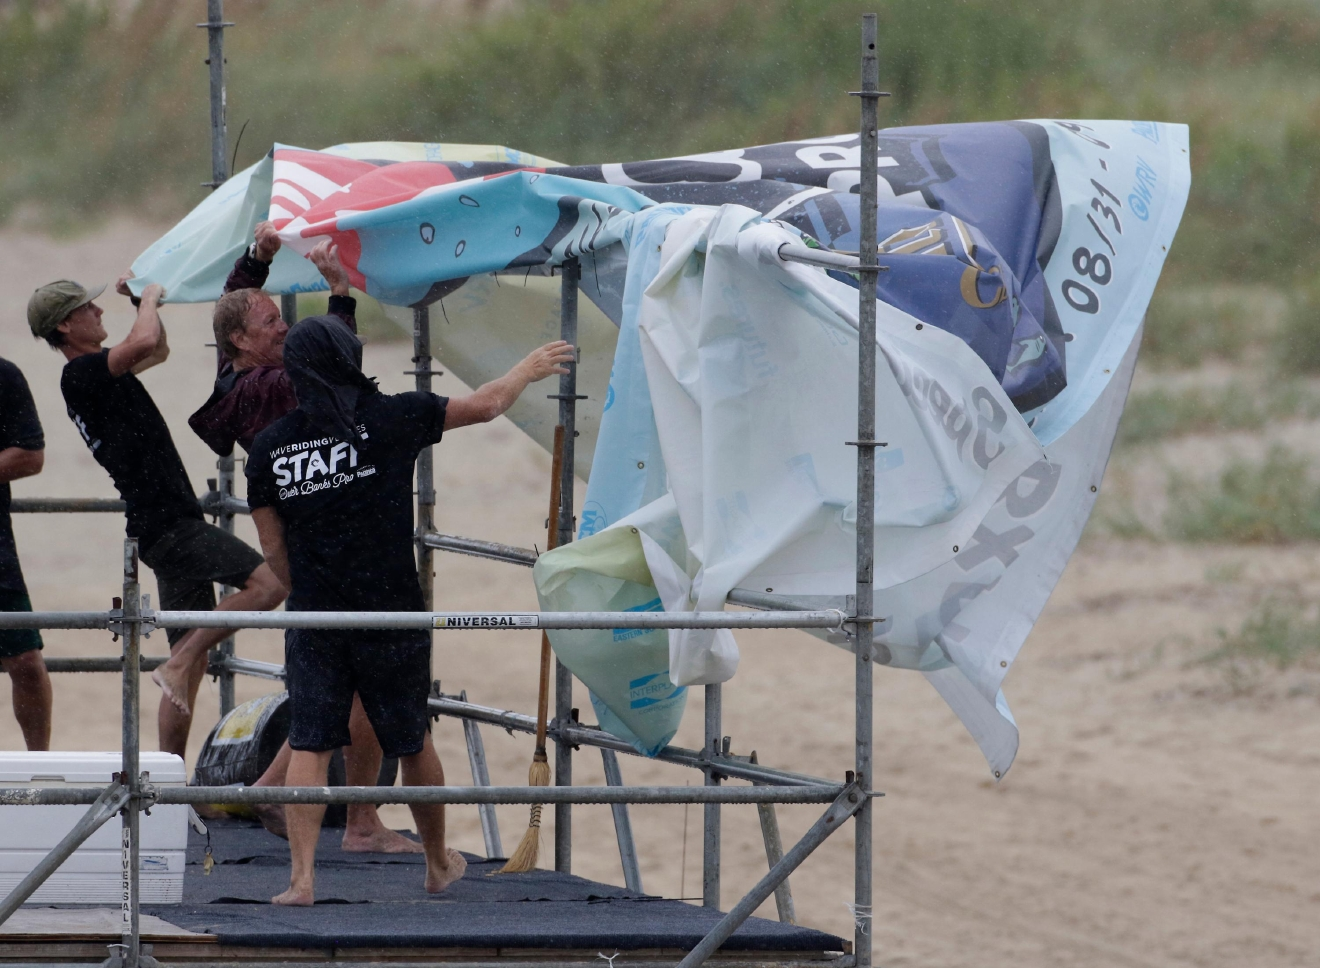 Staff members for the MRV Outer Banks Pro surf tournament take down a banner in Nags Head, N.C., Friday, Sept. 2, 2016, as Tropical Storm Hermine heads toward the Outer Banks. (AP Photo/Tom Copeland)